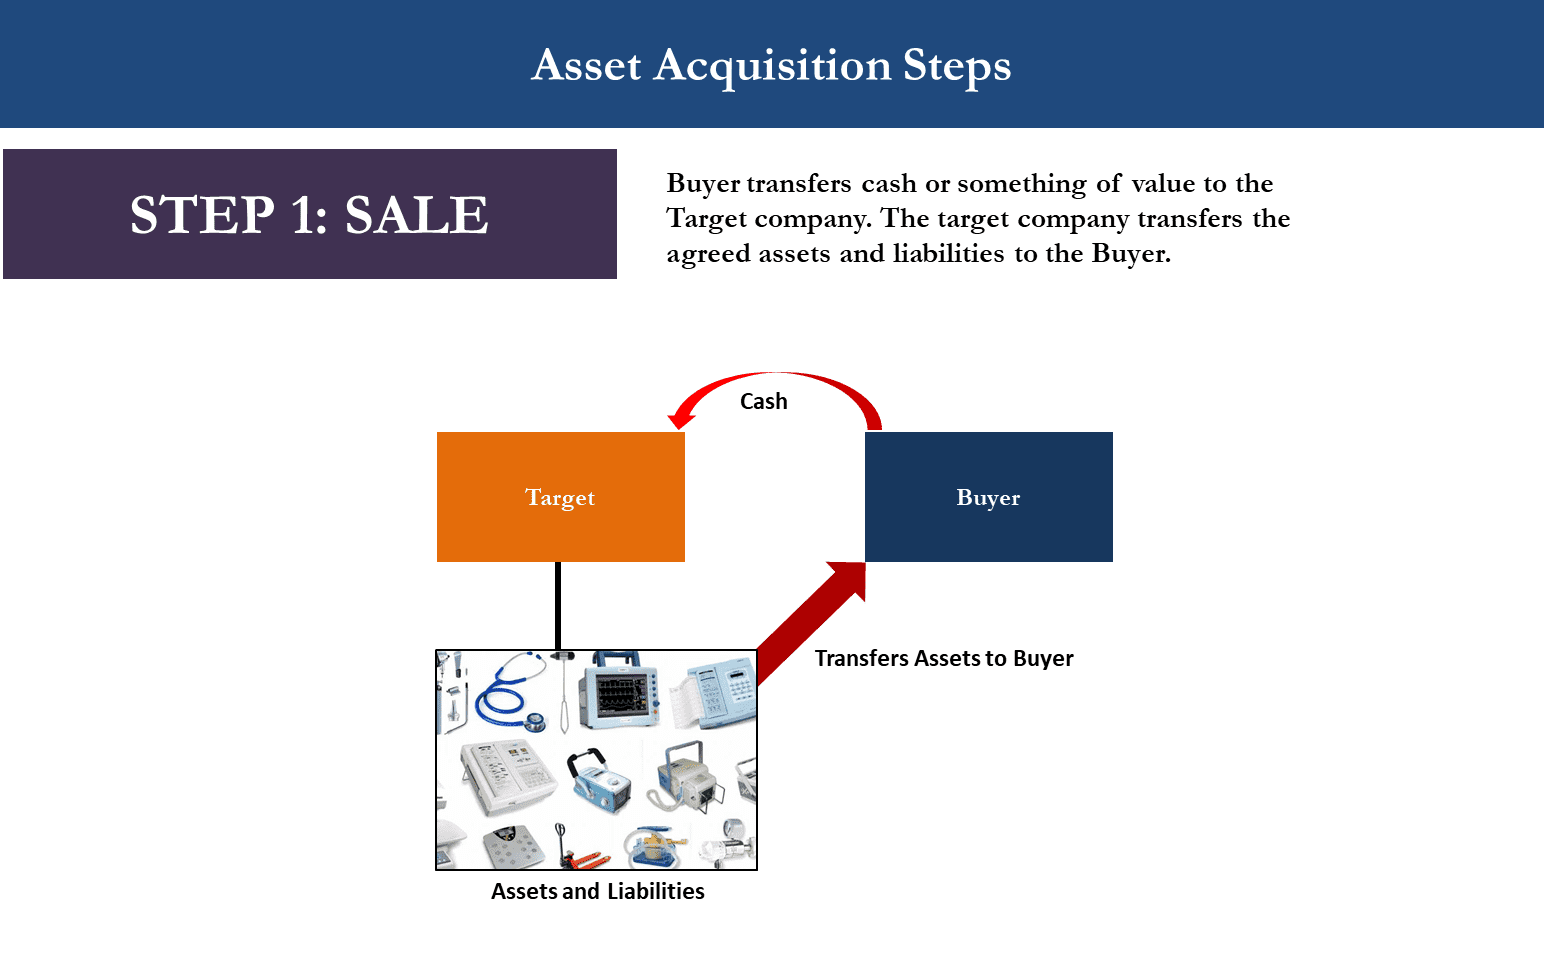 M&A Asset Acquisition Diagram showing Step 1 when Target exchanges with Buyer cash for assets